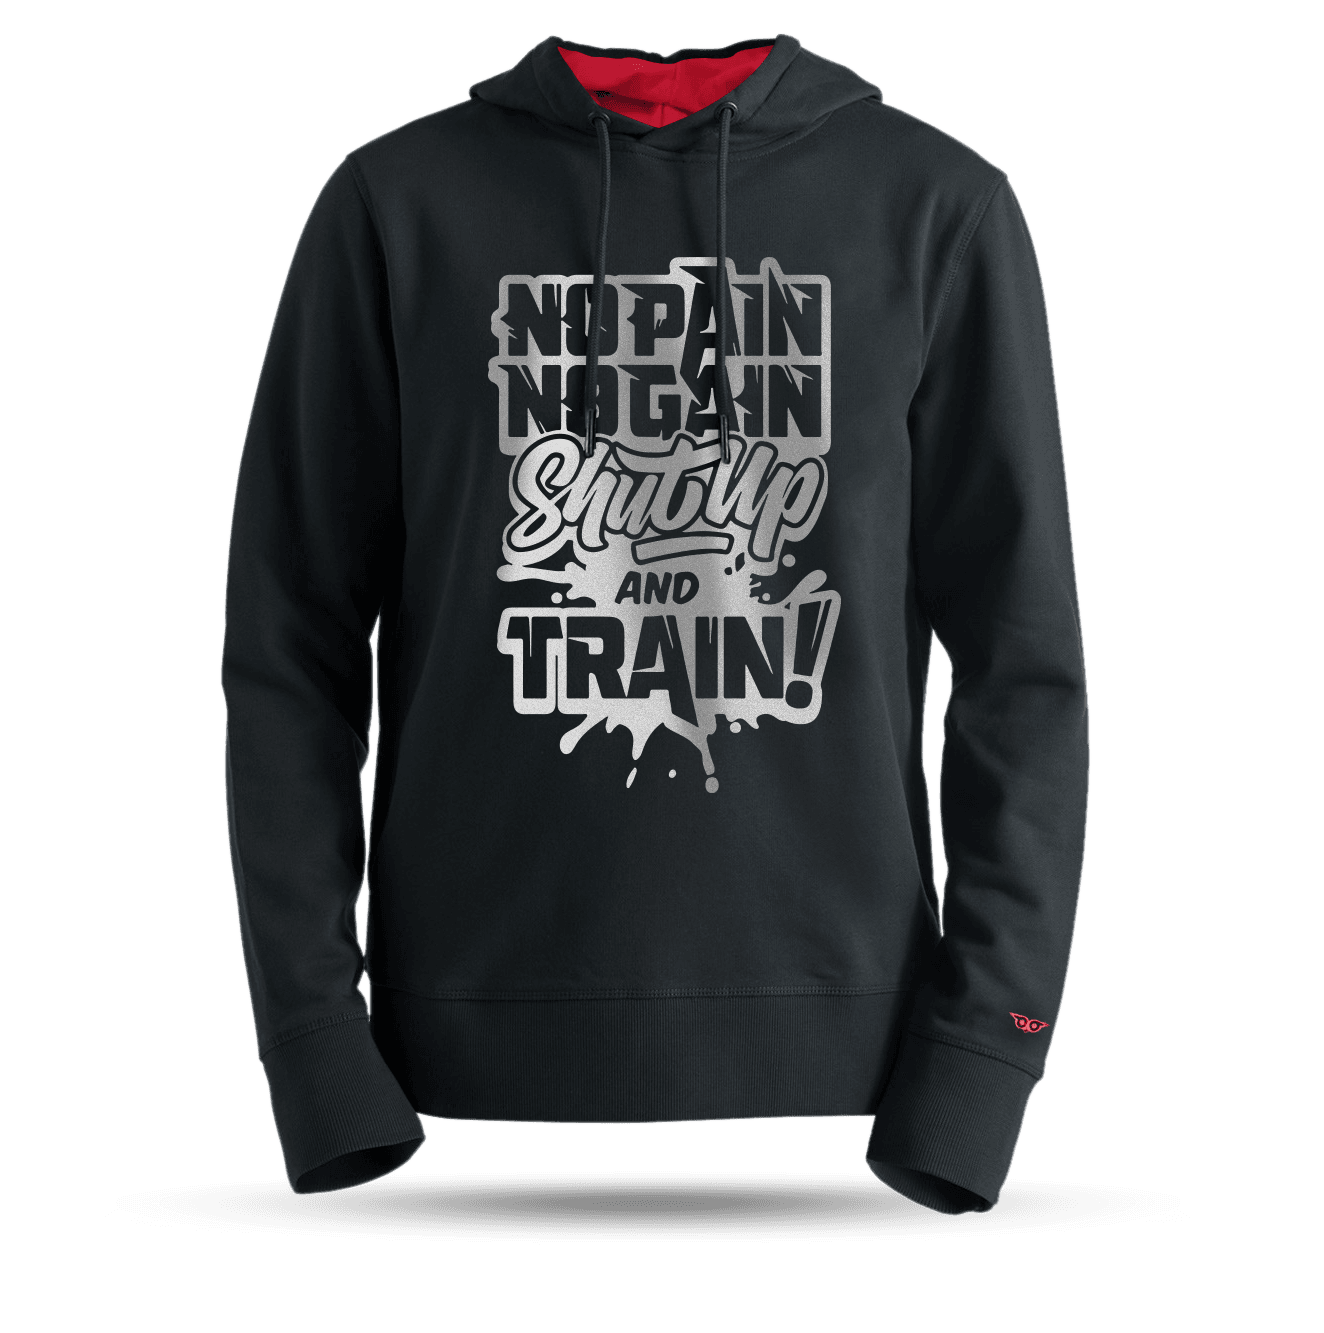 No-Pain-No-Gain-Tarrzz-Sweatshirt-Erkek-For-Slider-new